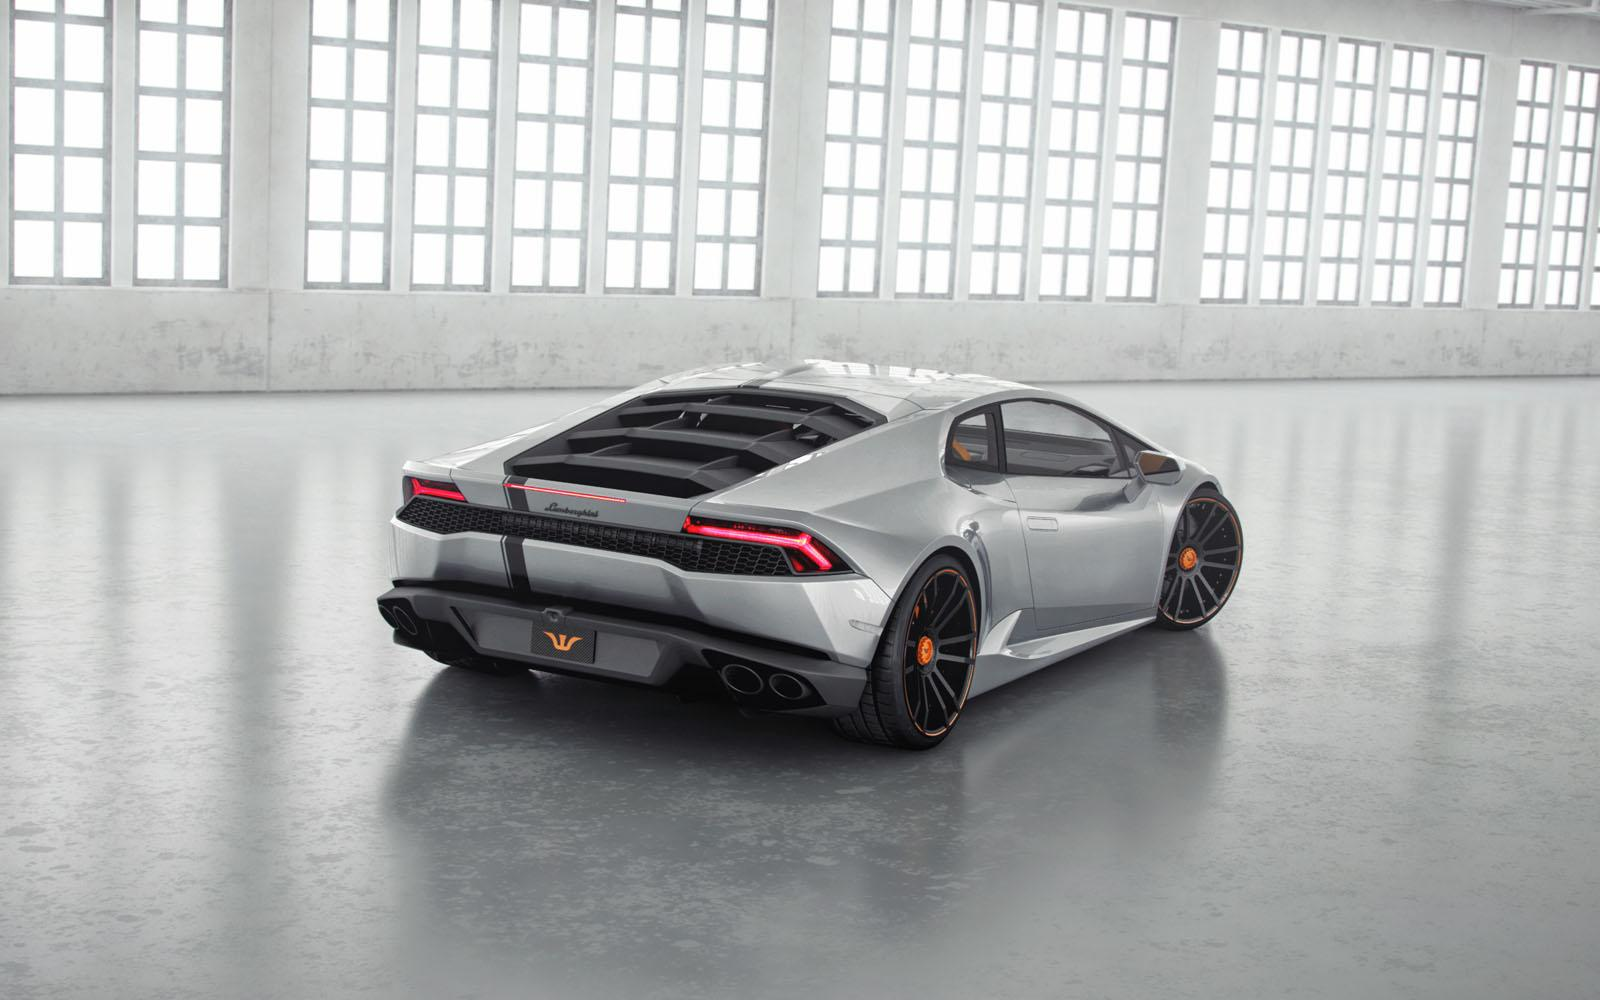 lamborghini huracan supercharged to 850 hp by wheelsandmore autoevolution. Black Bedroom Furniture Sets. Home Design Ideas